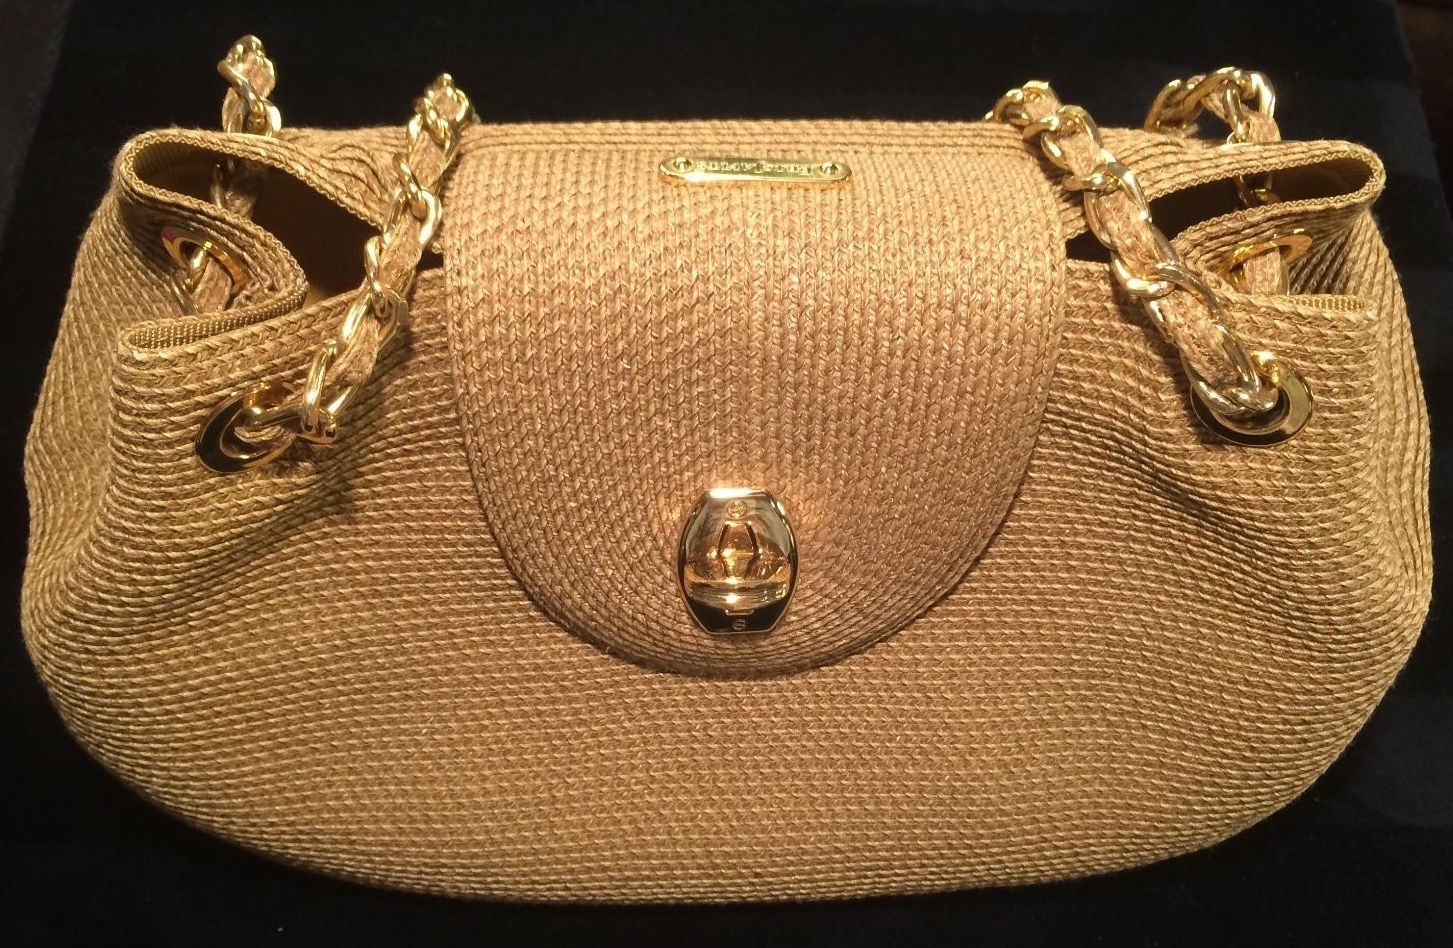 Eric Javits Straw Bag With Chain Strap Just For Summer